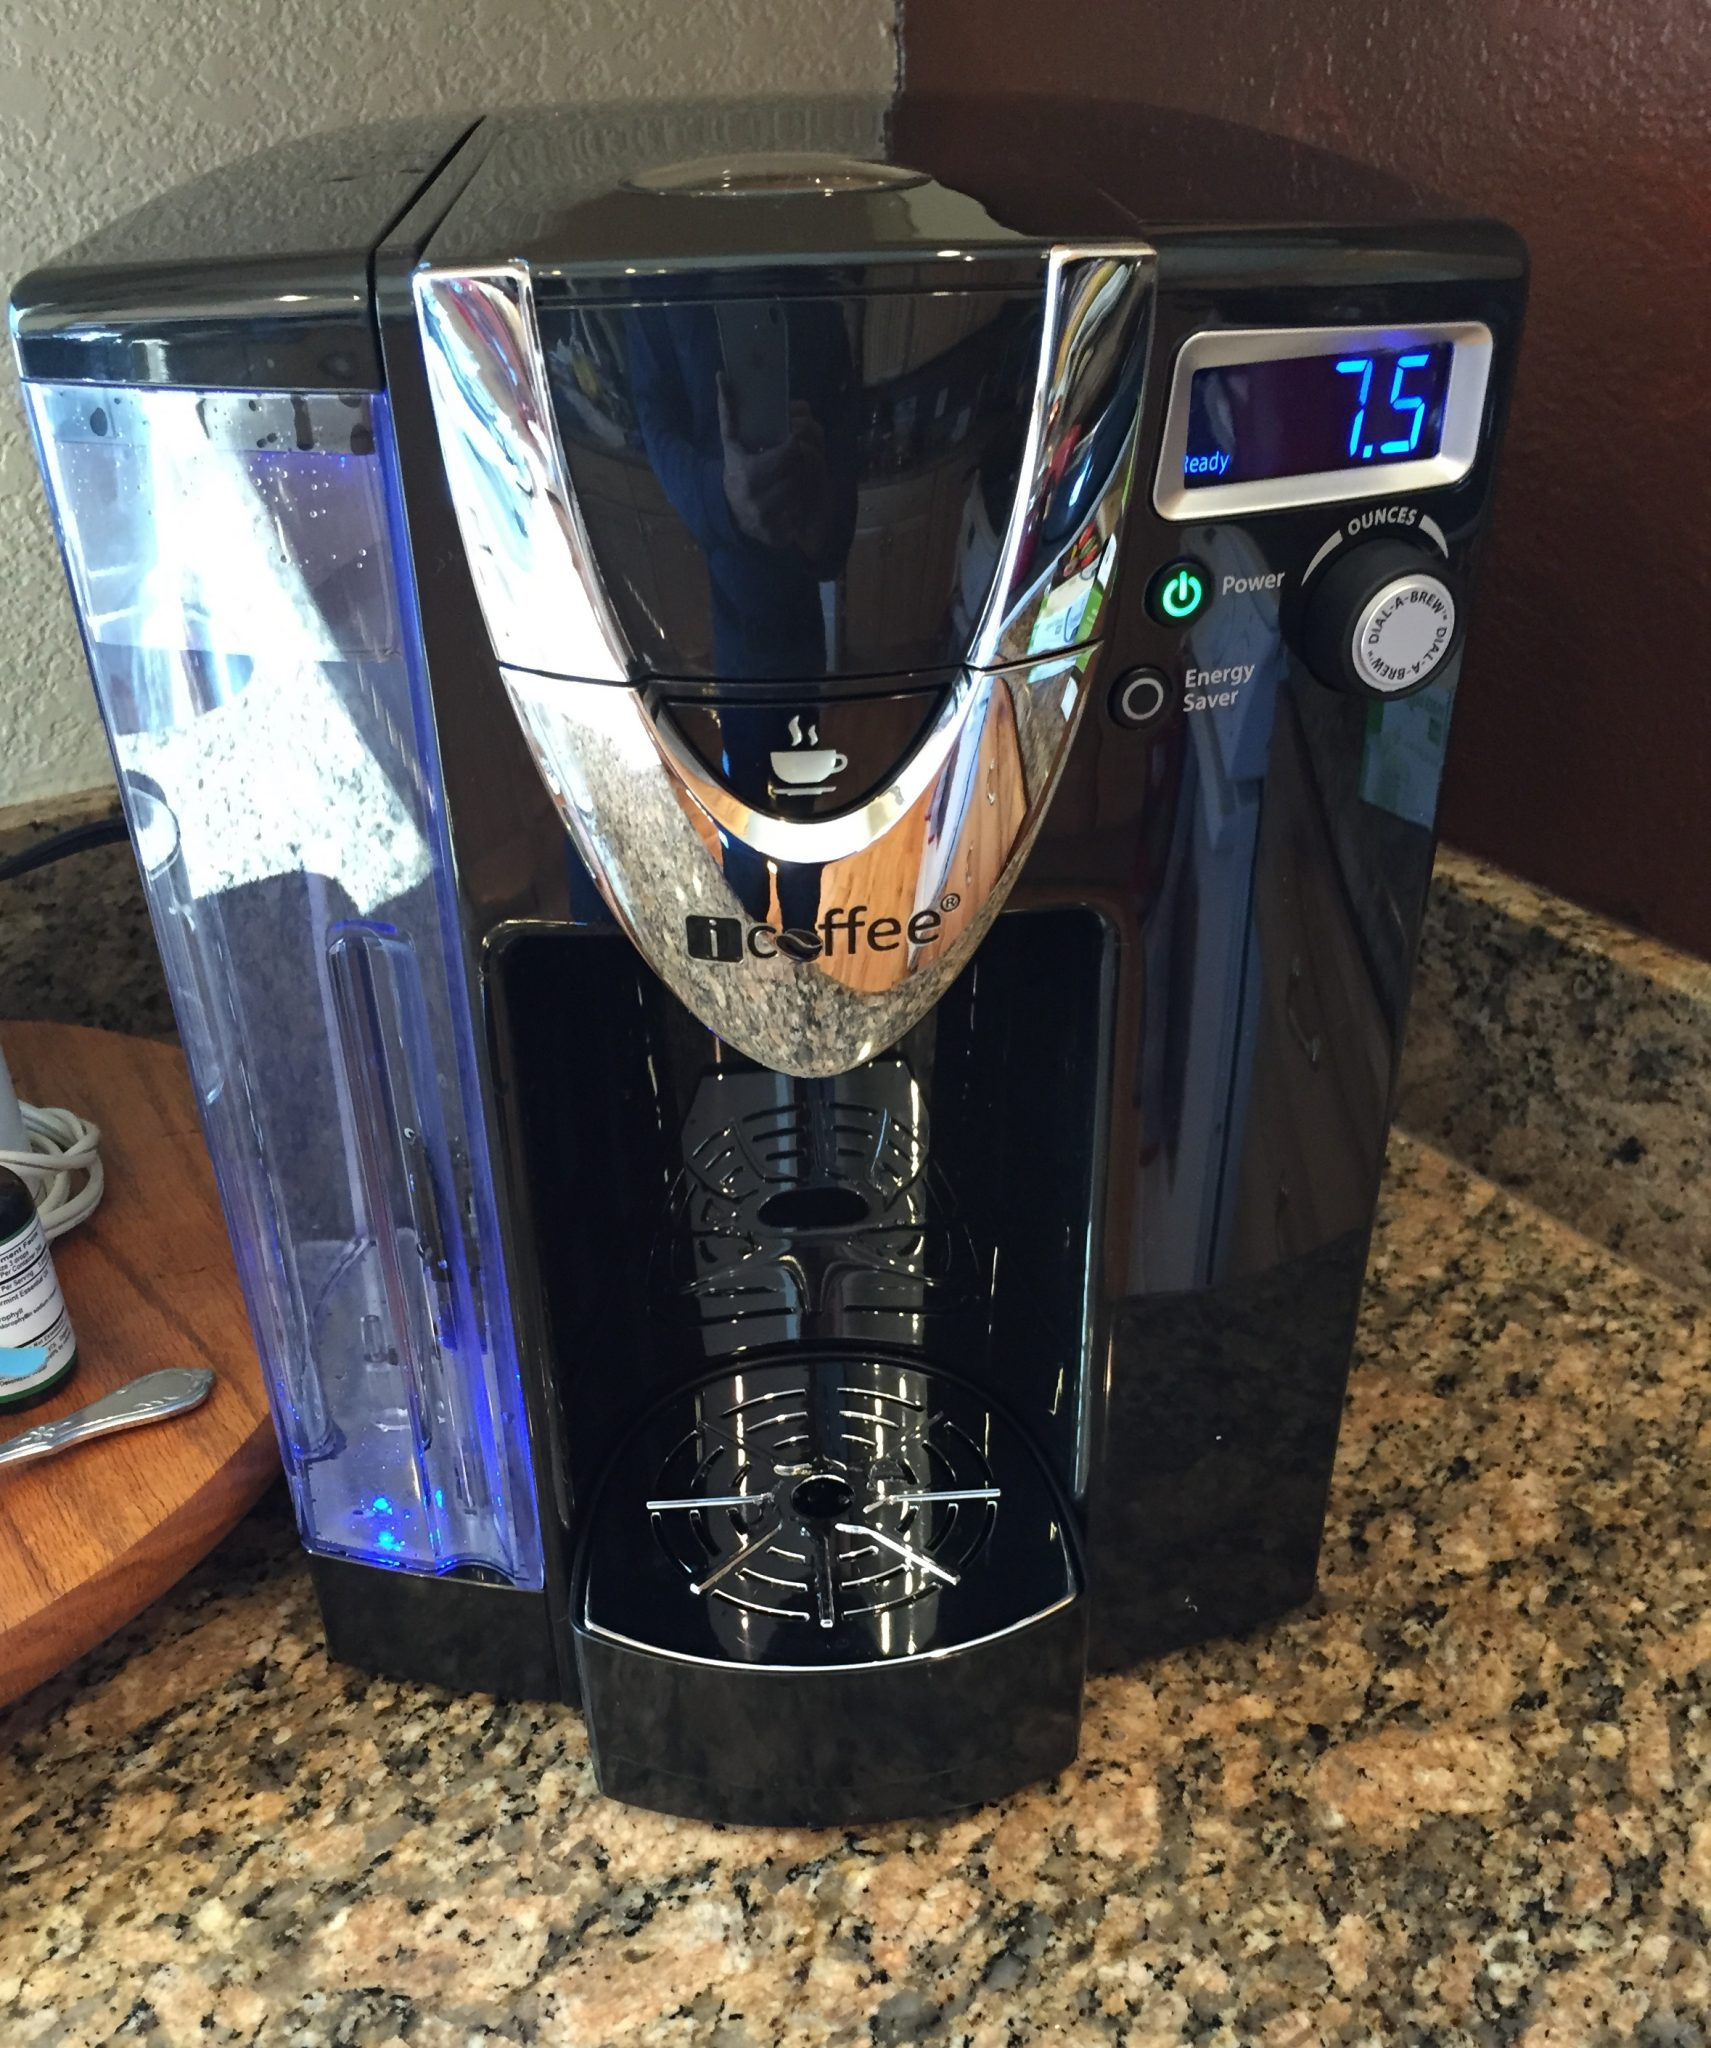 iCoffee Opus Review. Does it really make better coffee than Keurig?